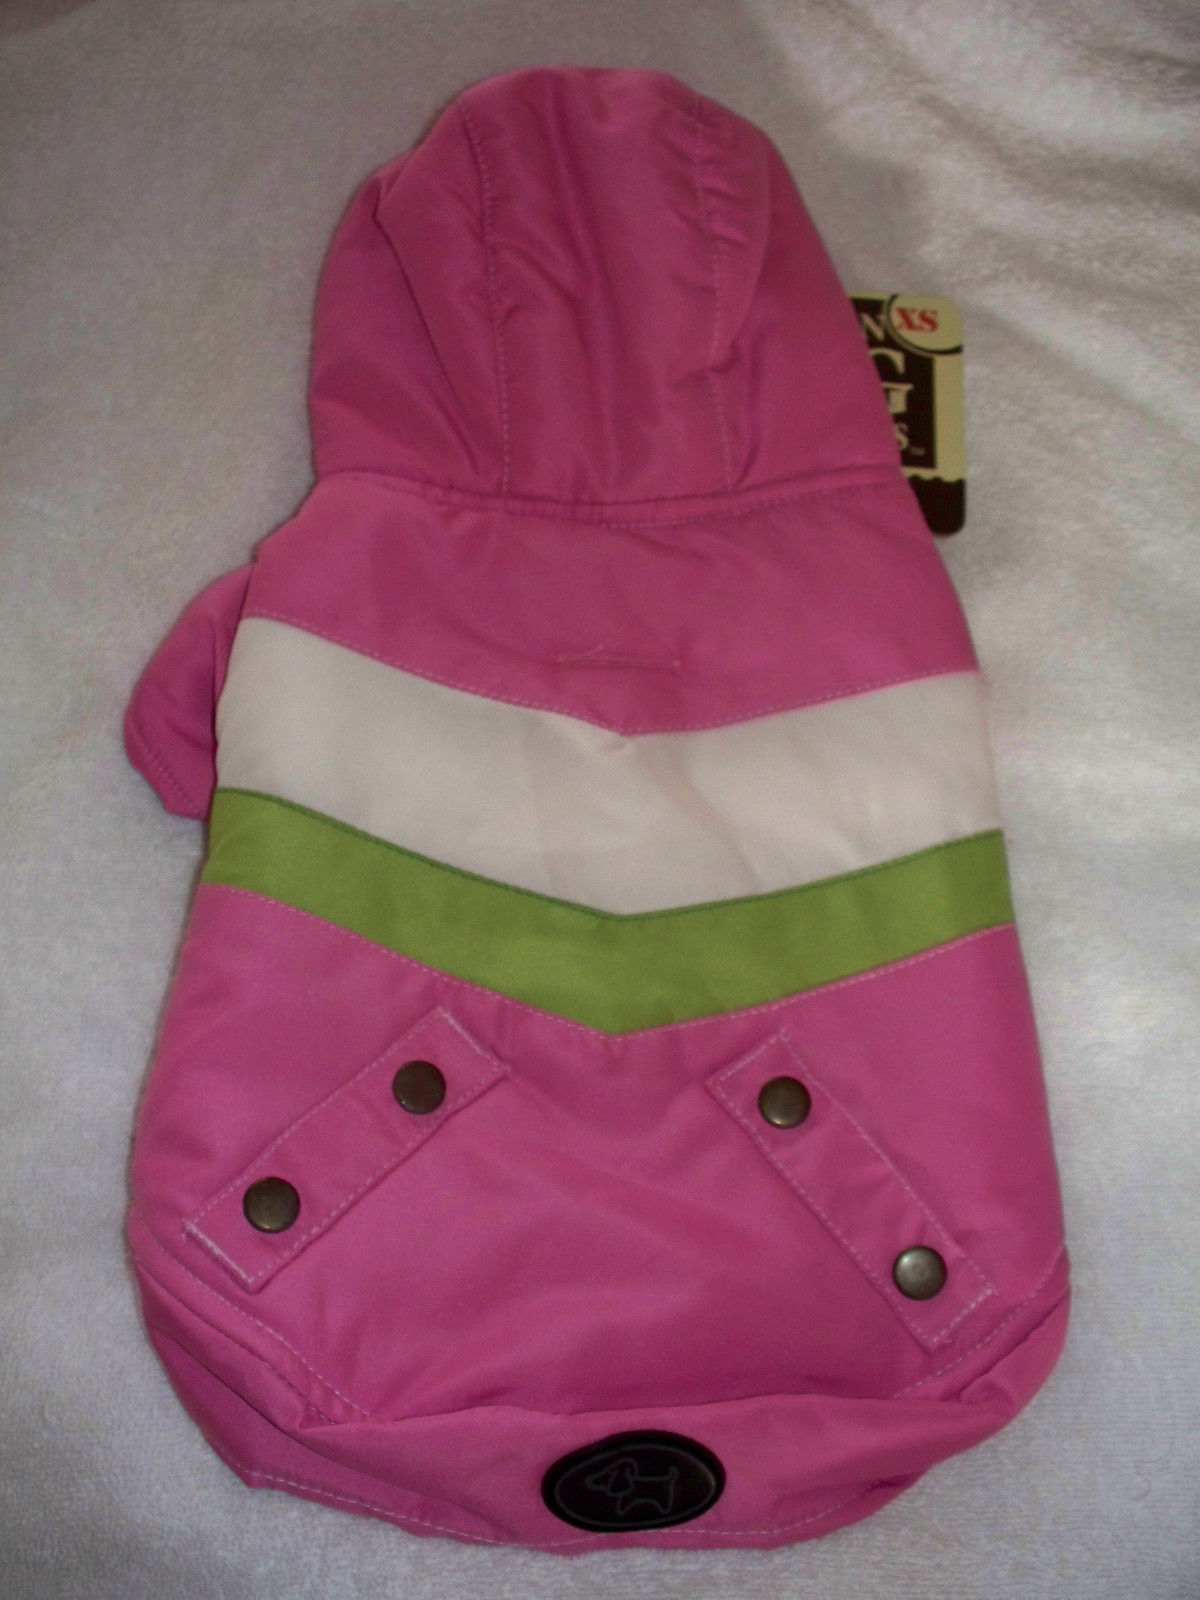 XSmall Pink Good Dog Reversible Toy Yorkie Chihuahua Poodle Clothes Jacket Coat